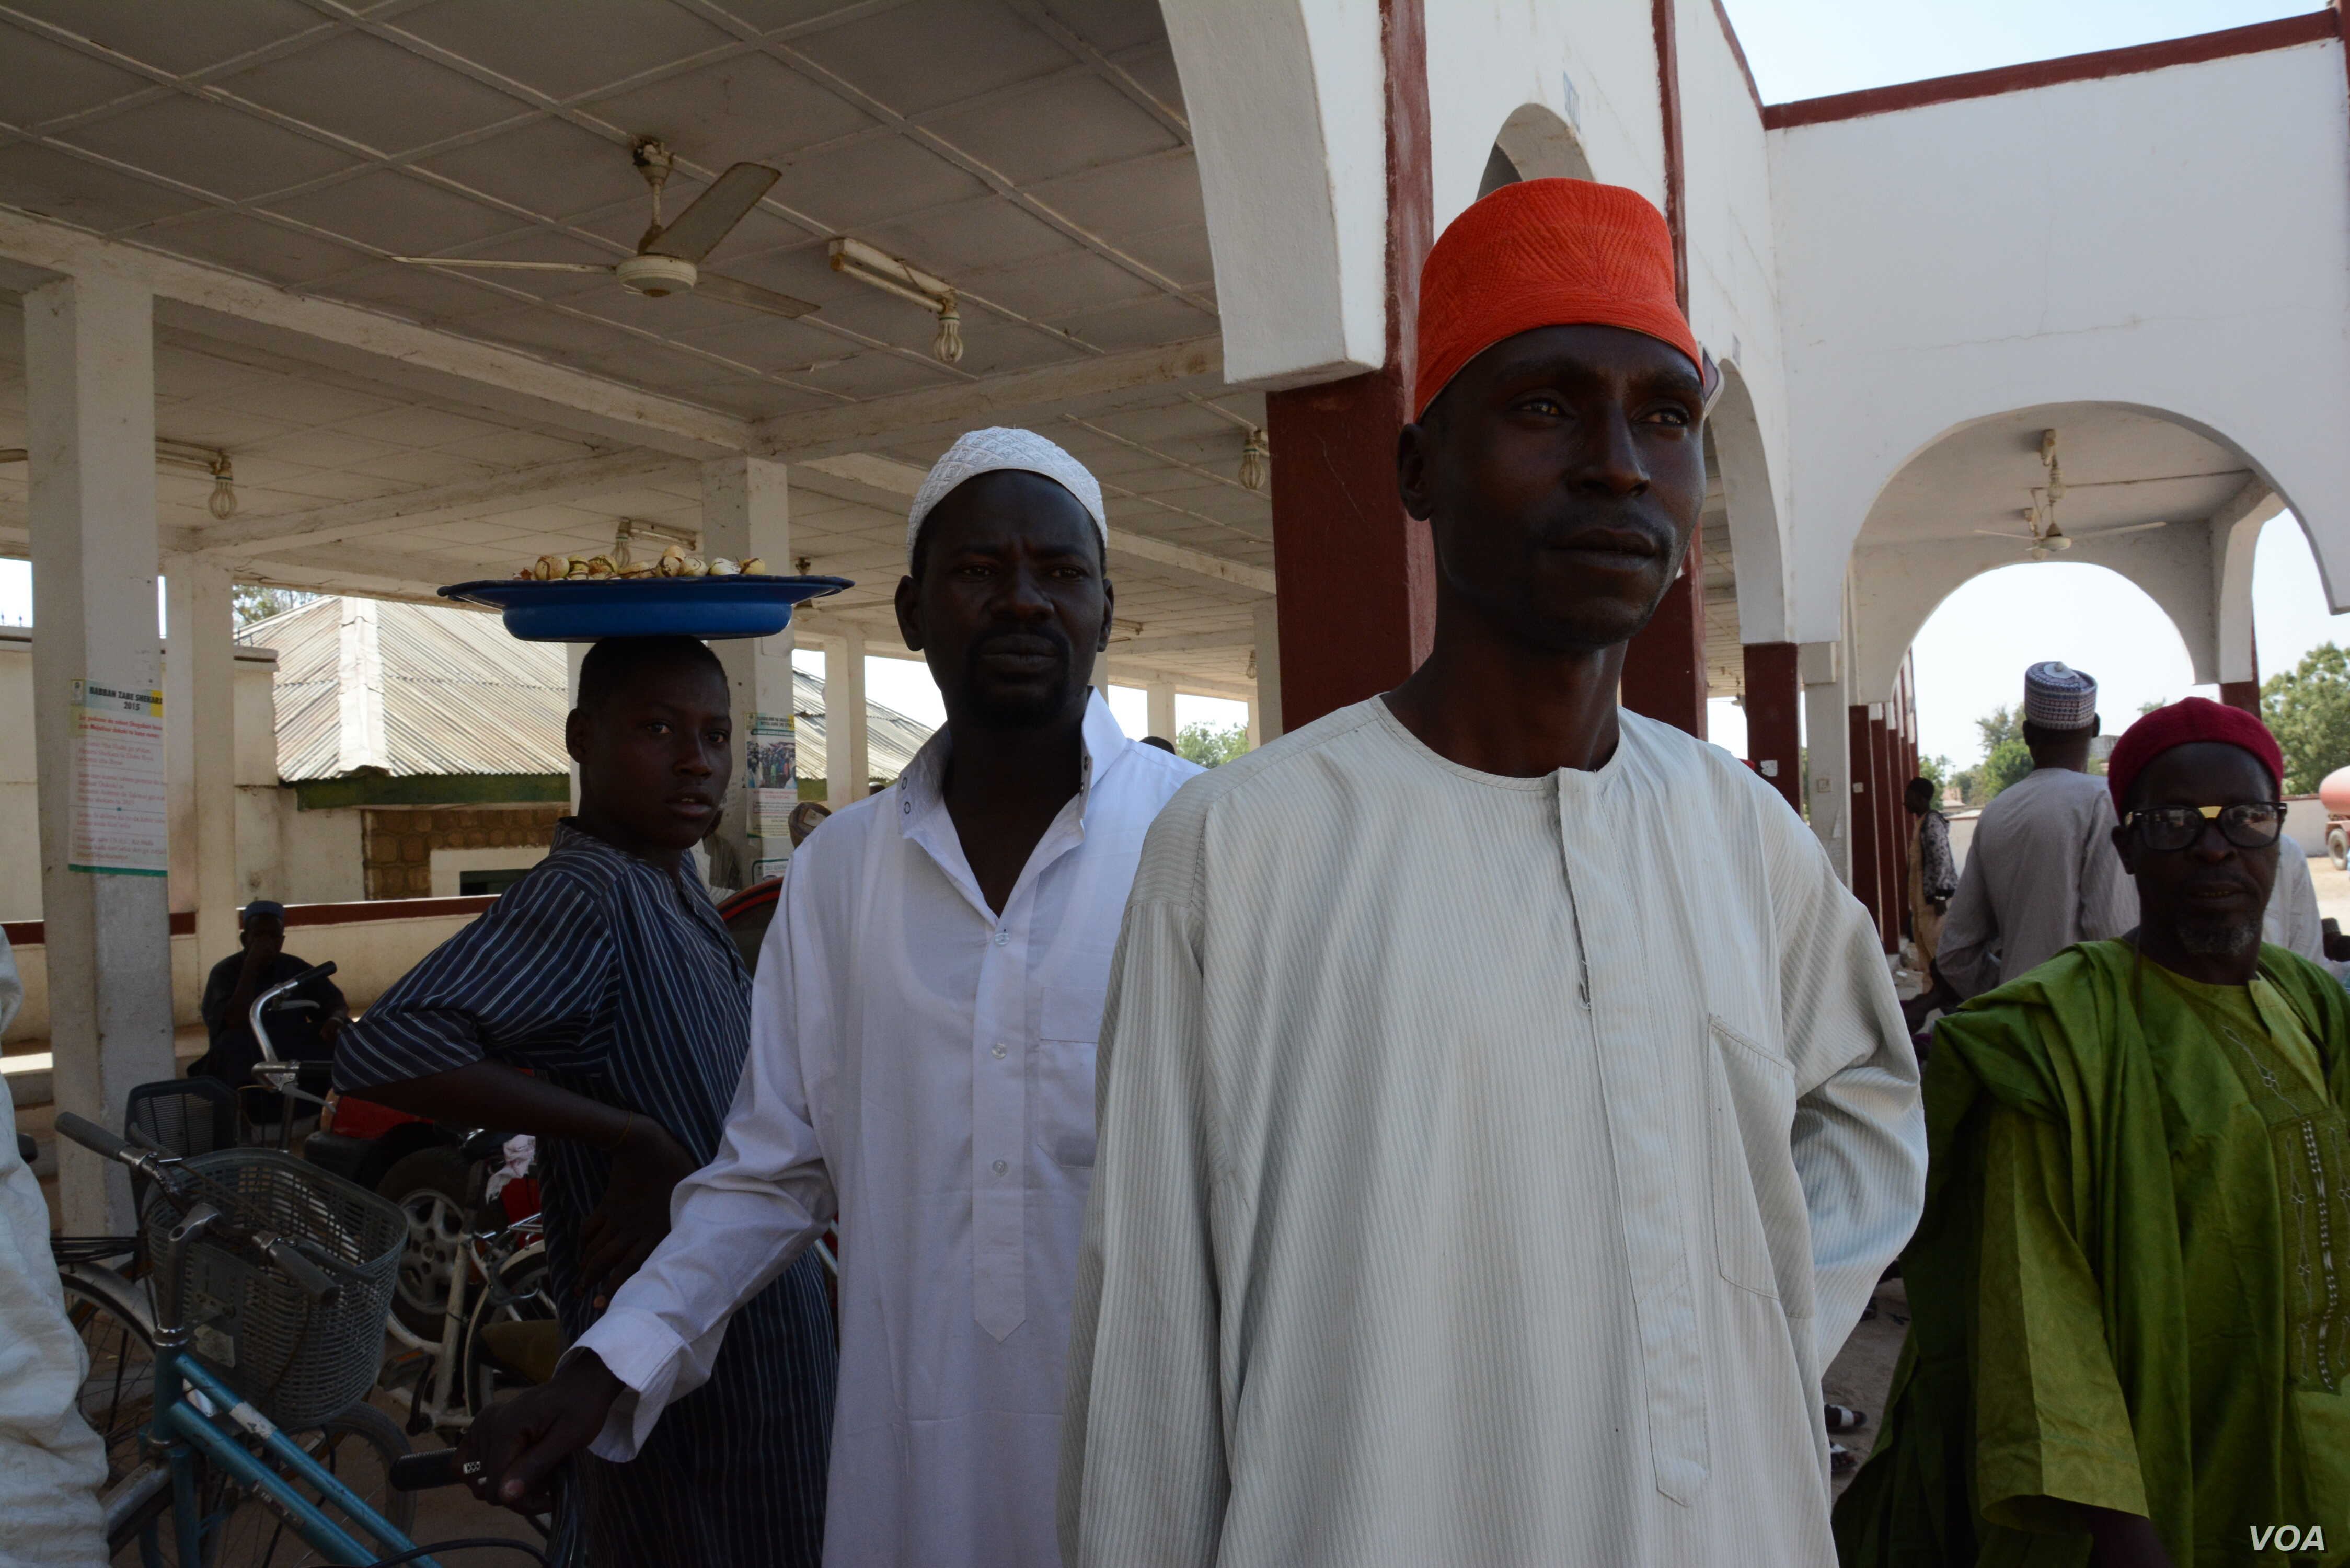 When the insurgents entered Mubi, the emir fled. His servants however stayed behind to guard the palace. (Katarina Höije/VOA News)